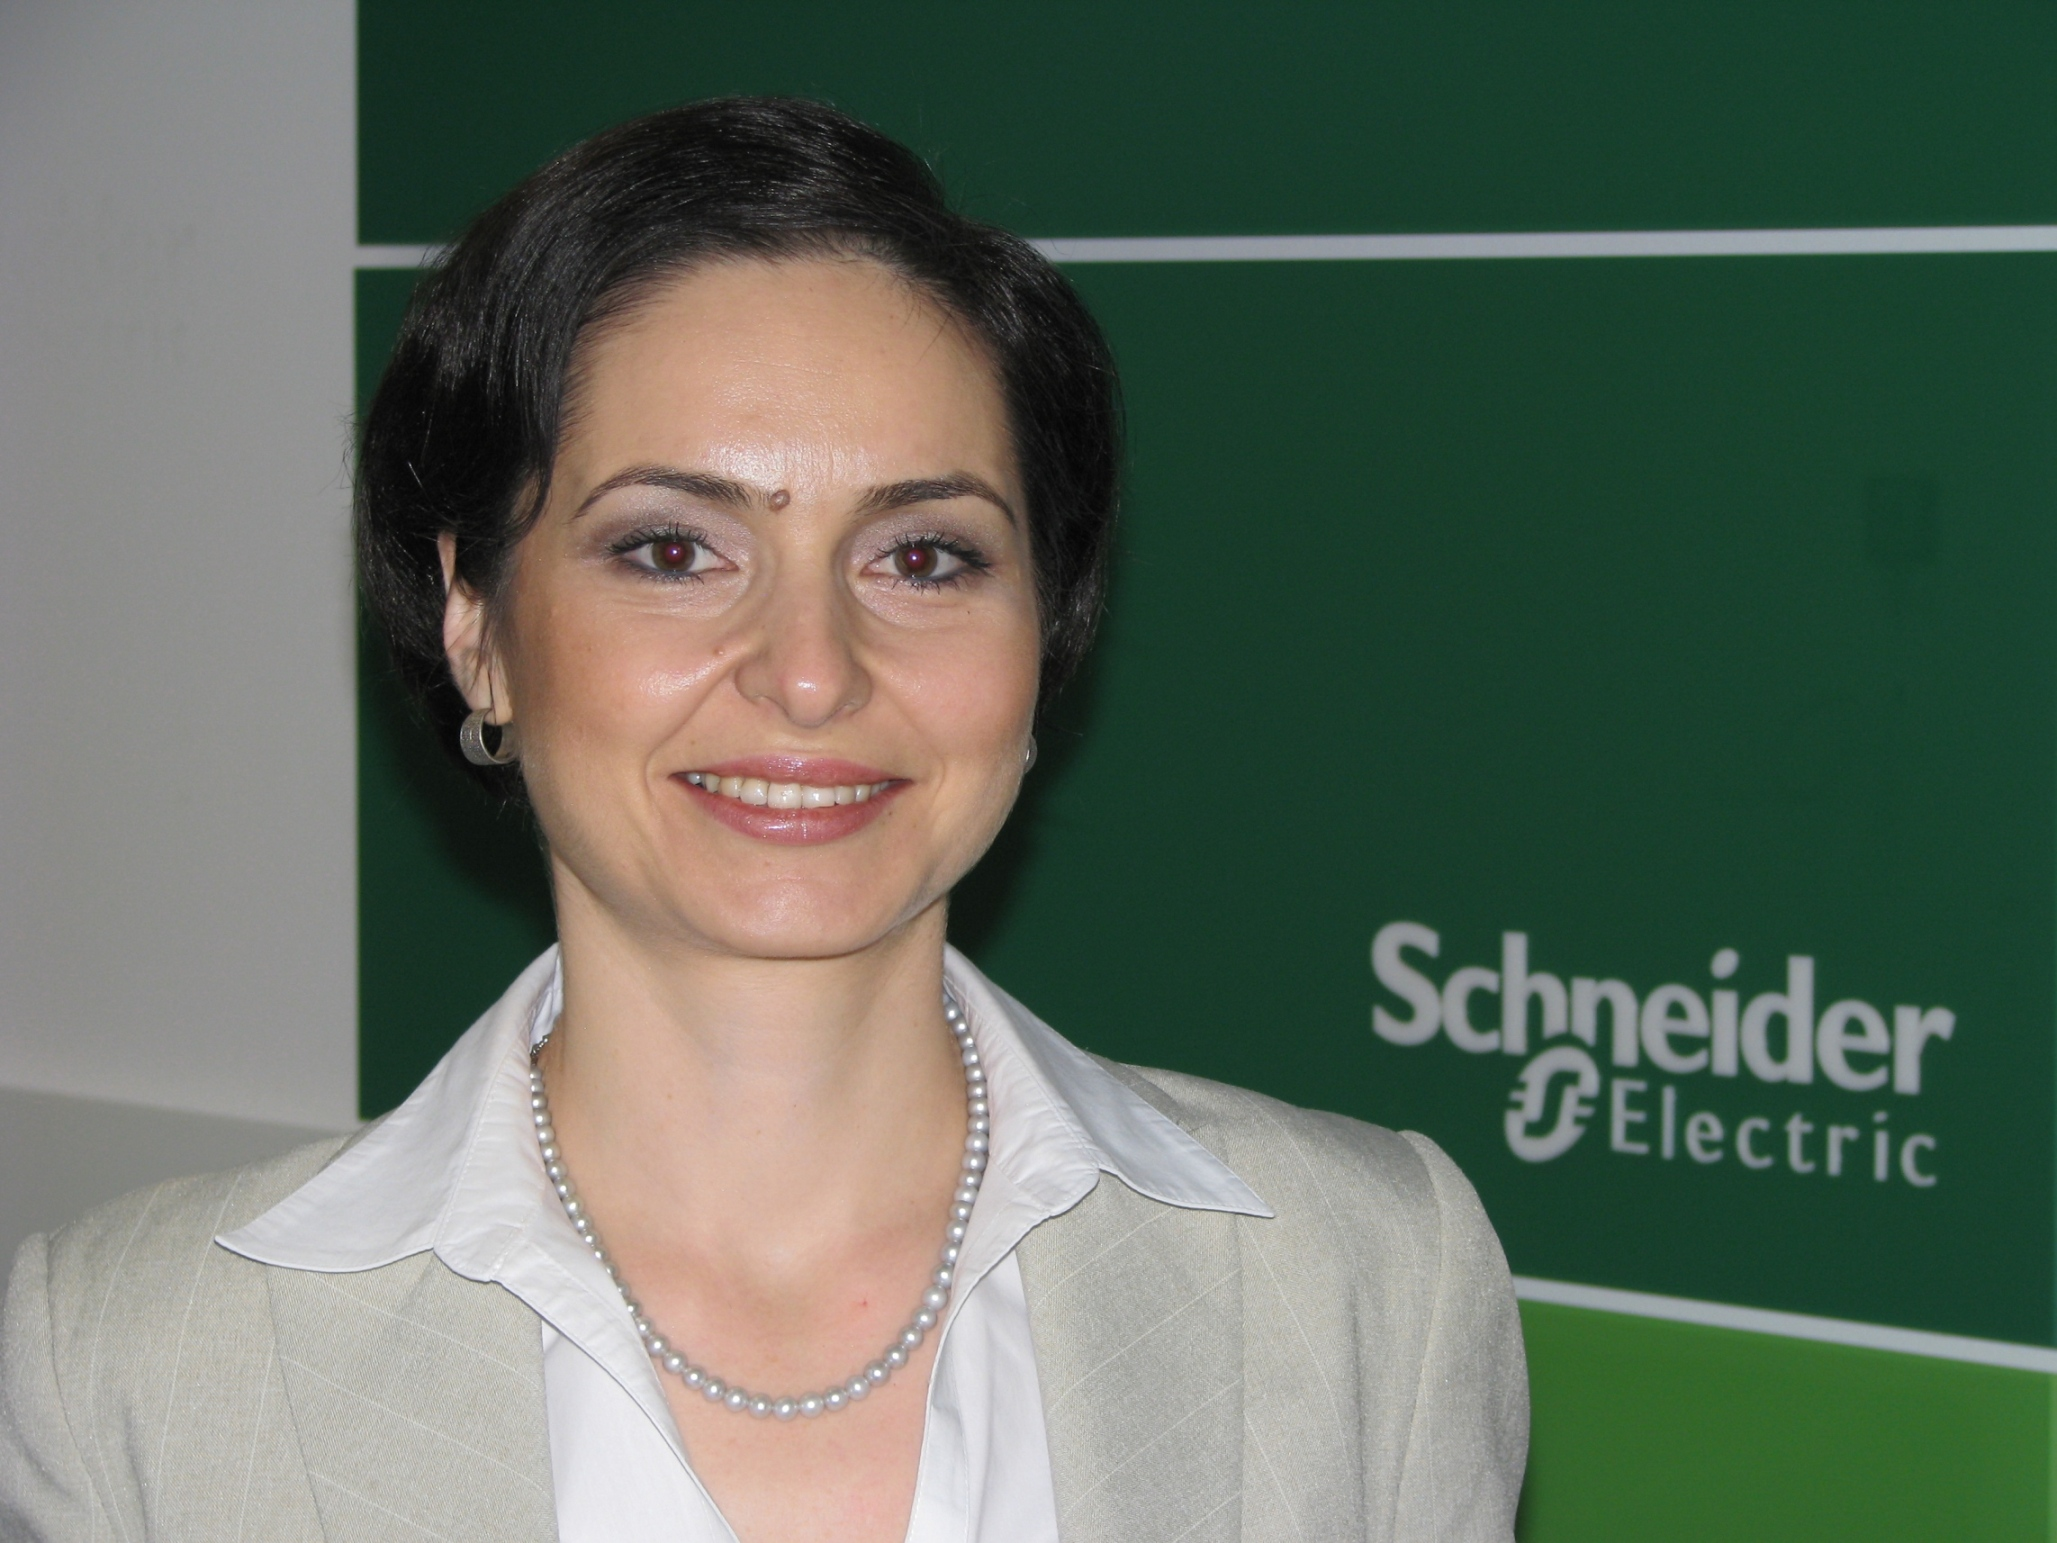 Florentina Totth, Country President Schneider Electric Romania